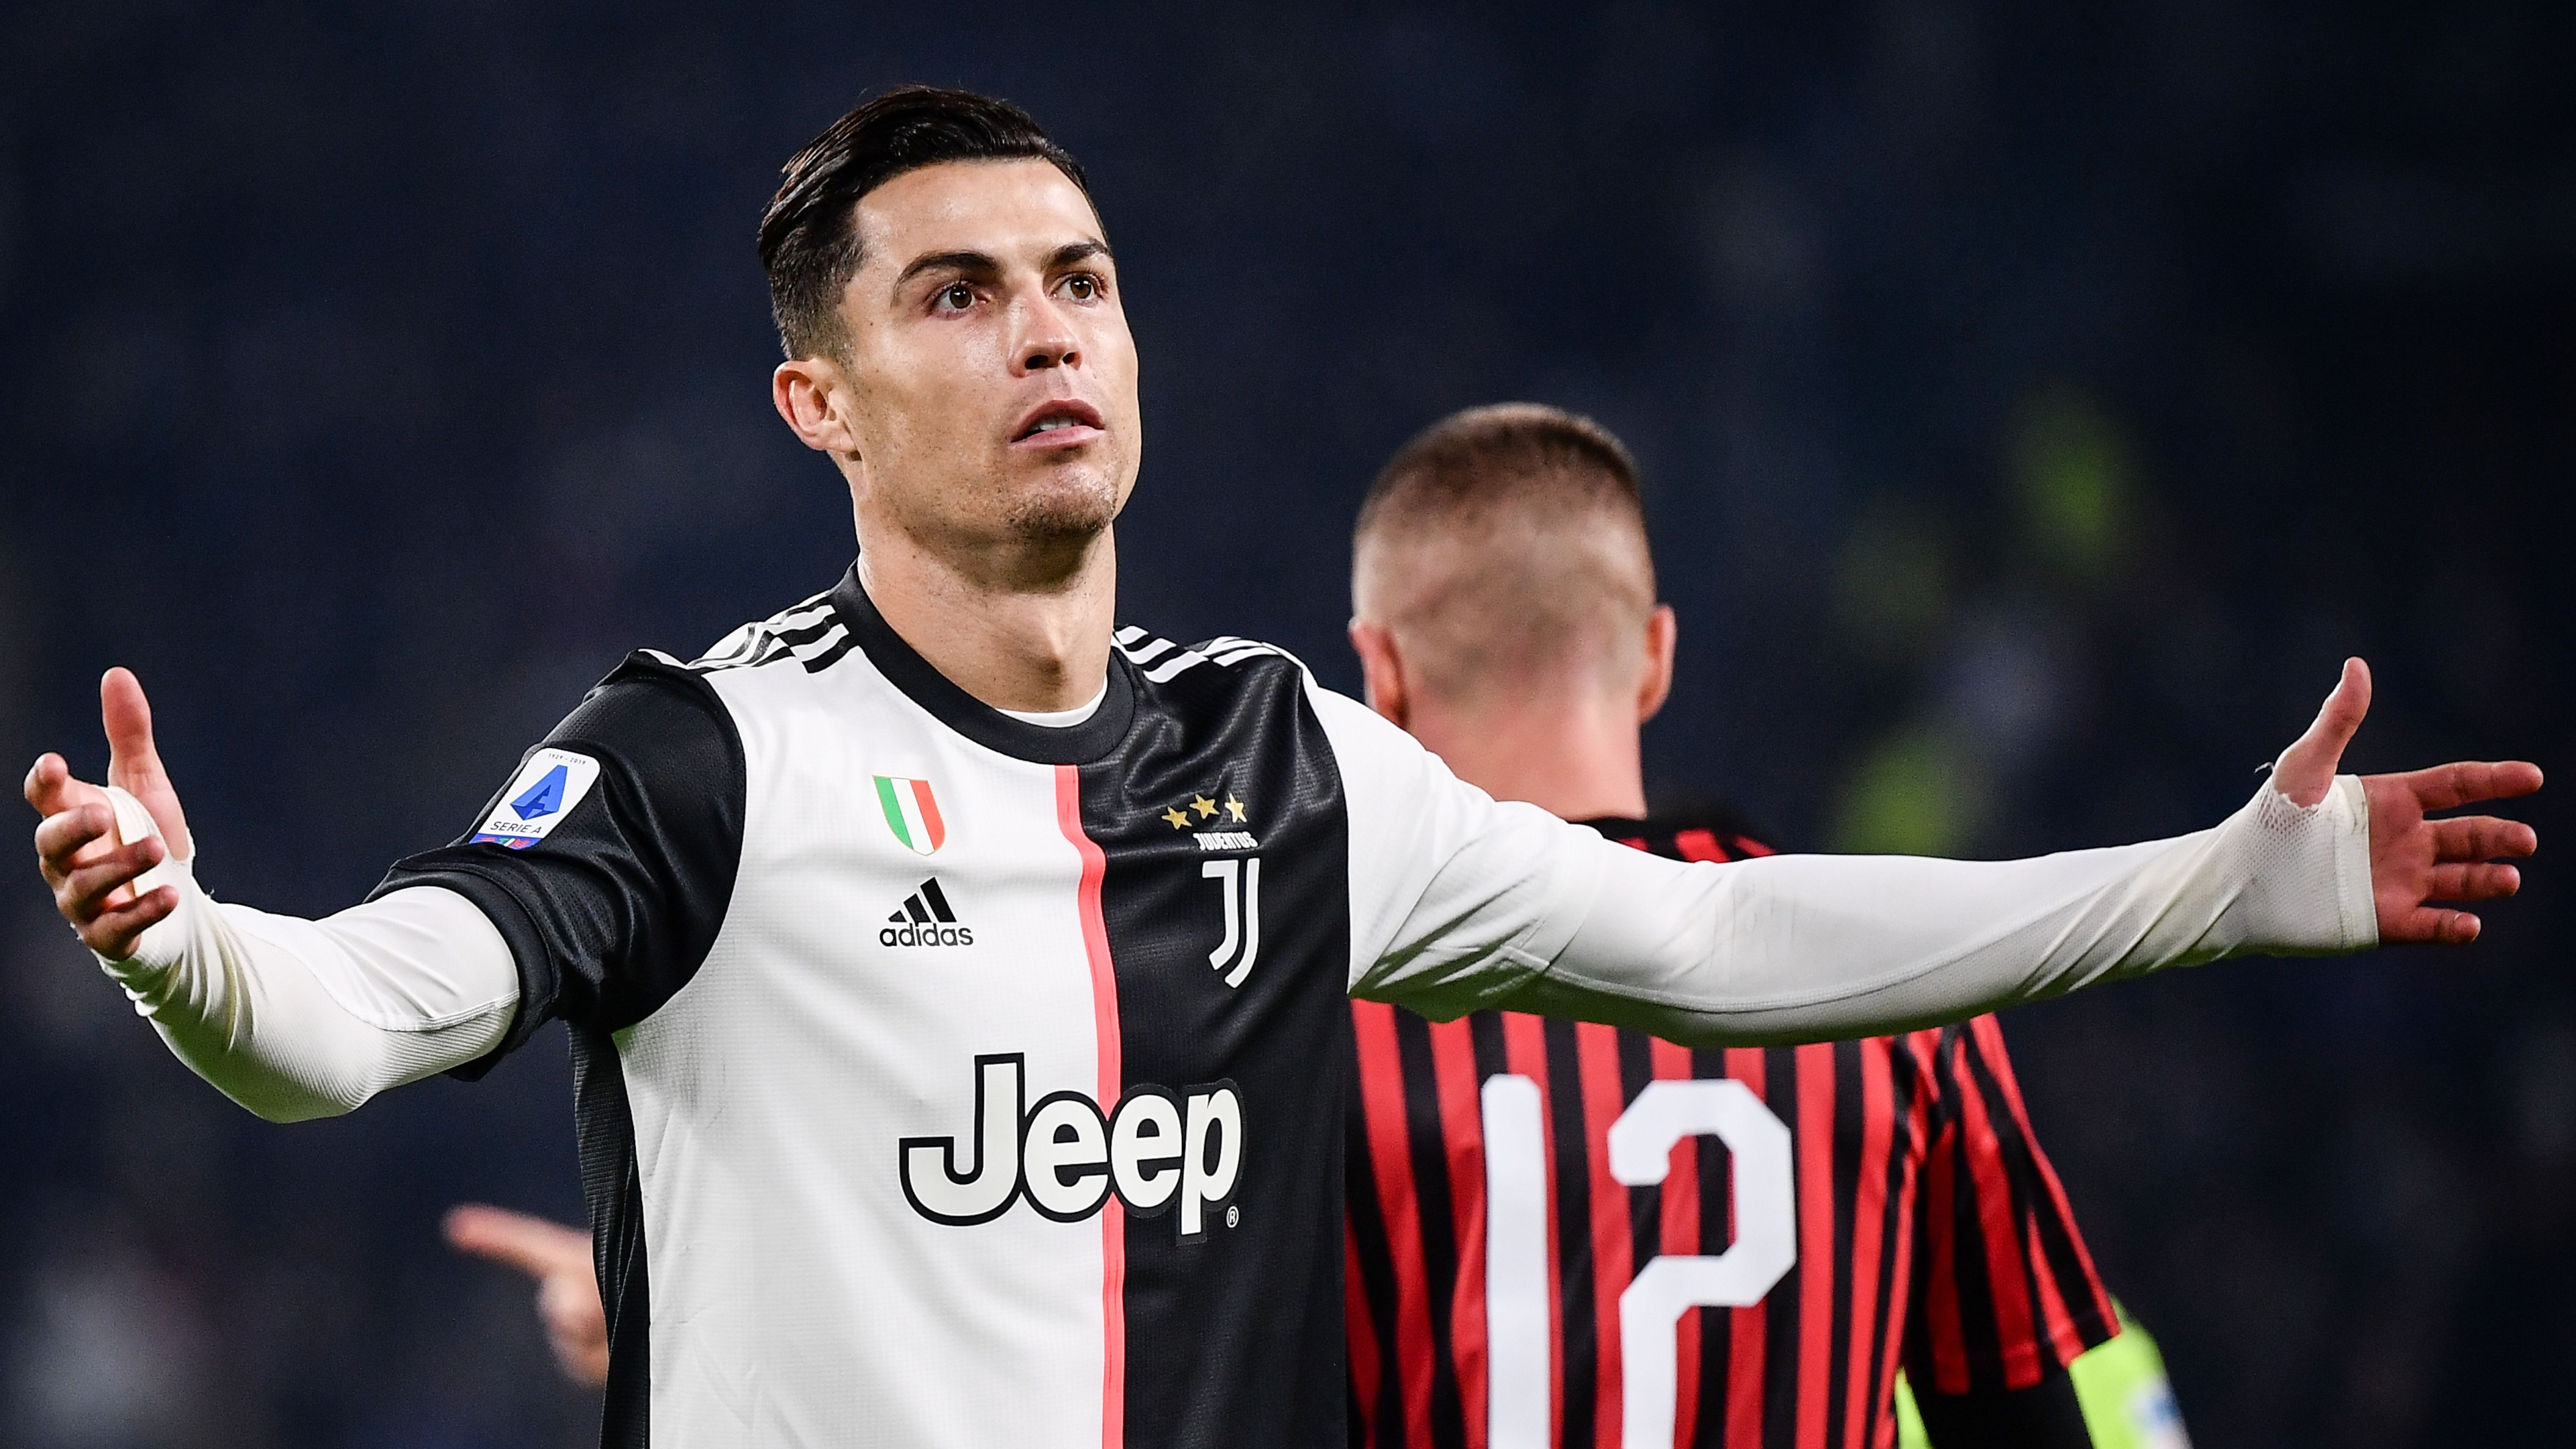 Cristiano risks Serie A ban after actions at Juventus Stadium